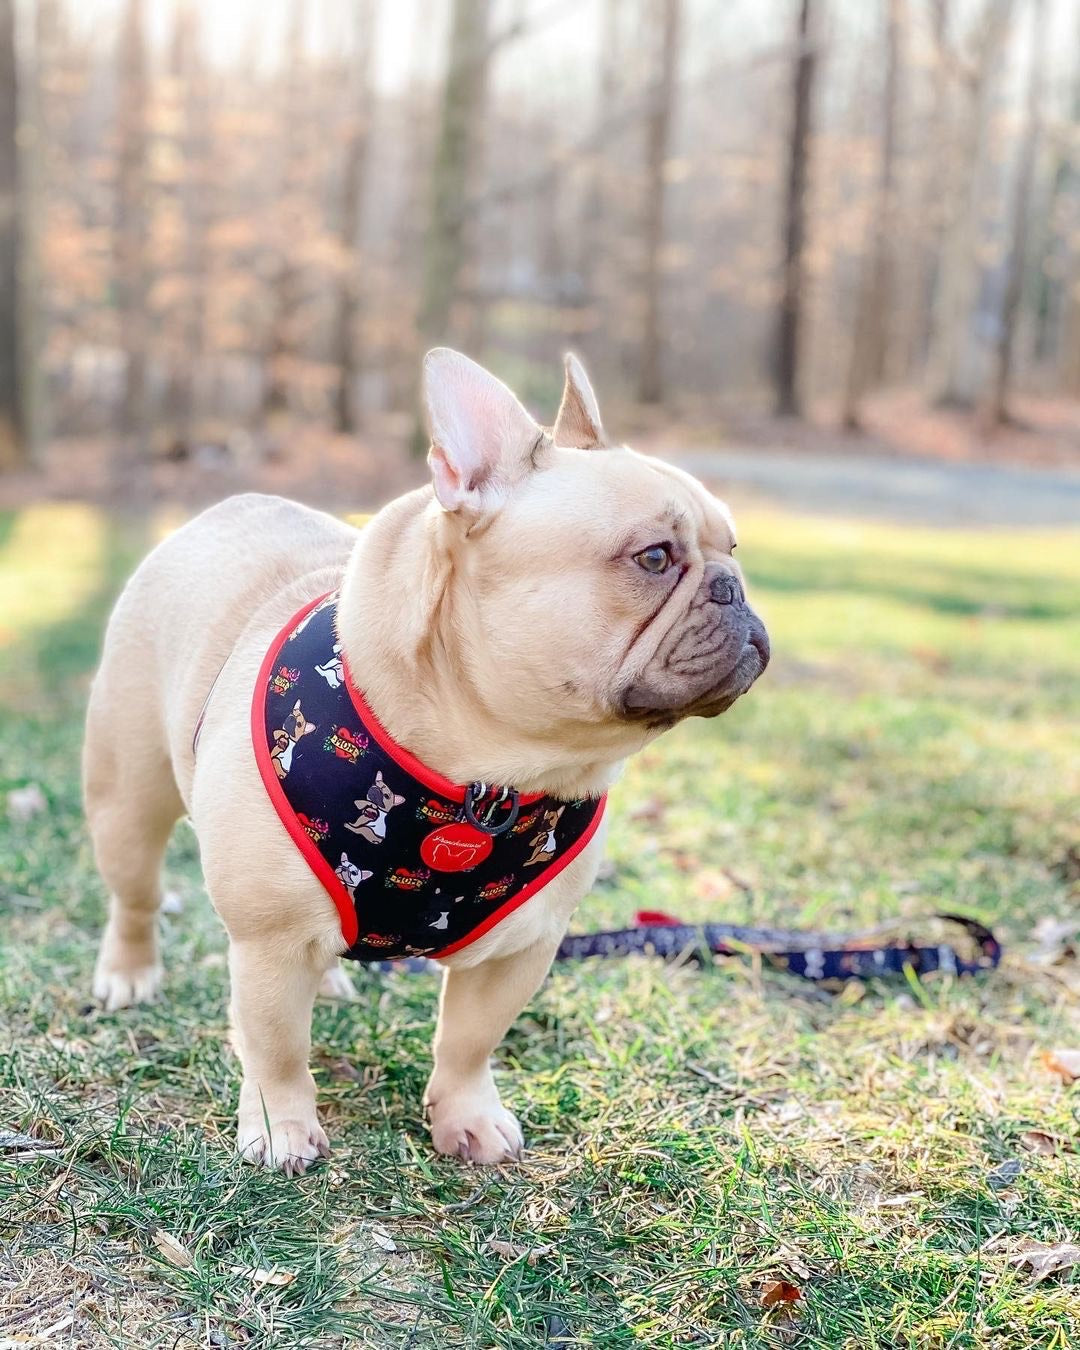 Frenchiestore Reversible Dog Health Harness | Puppy Love, Frenchie Dog, French Bulldog pet products